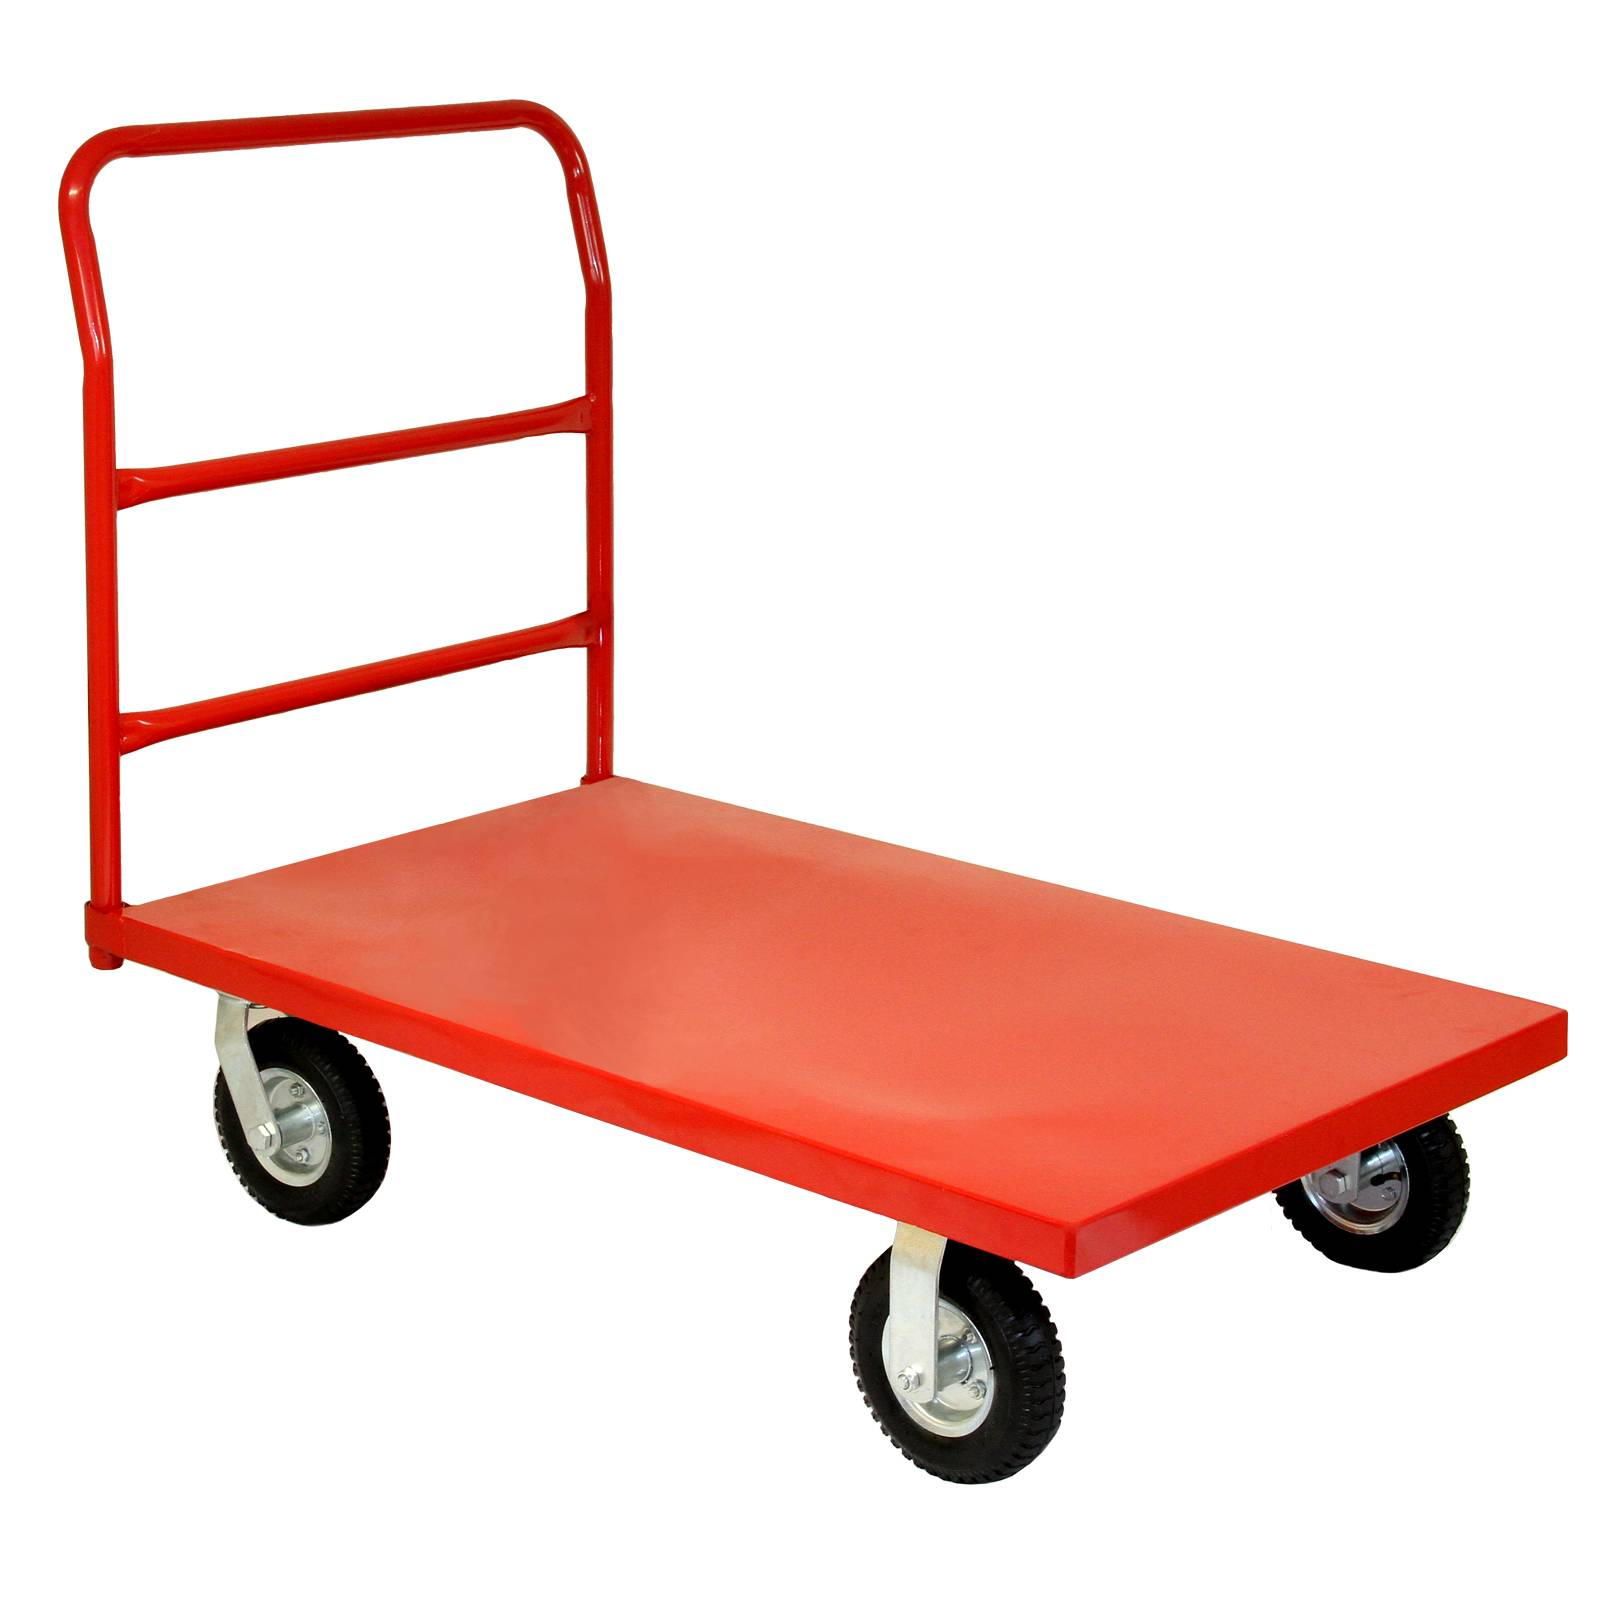 Warehouse Trolley Heavy Duty Platform Truck Industrial